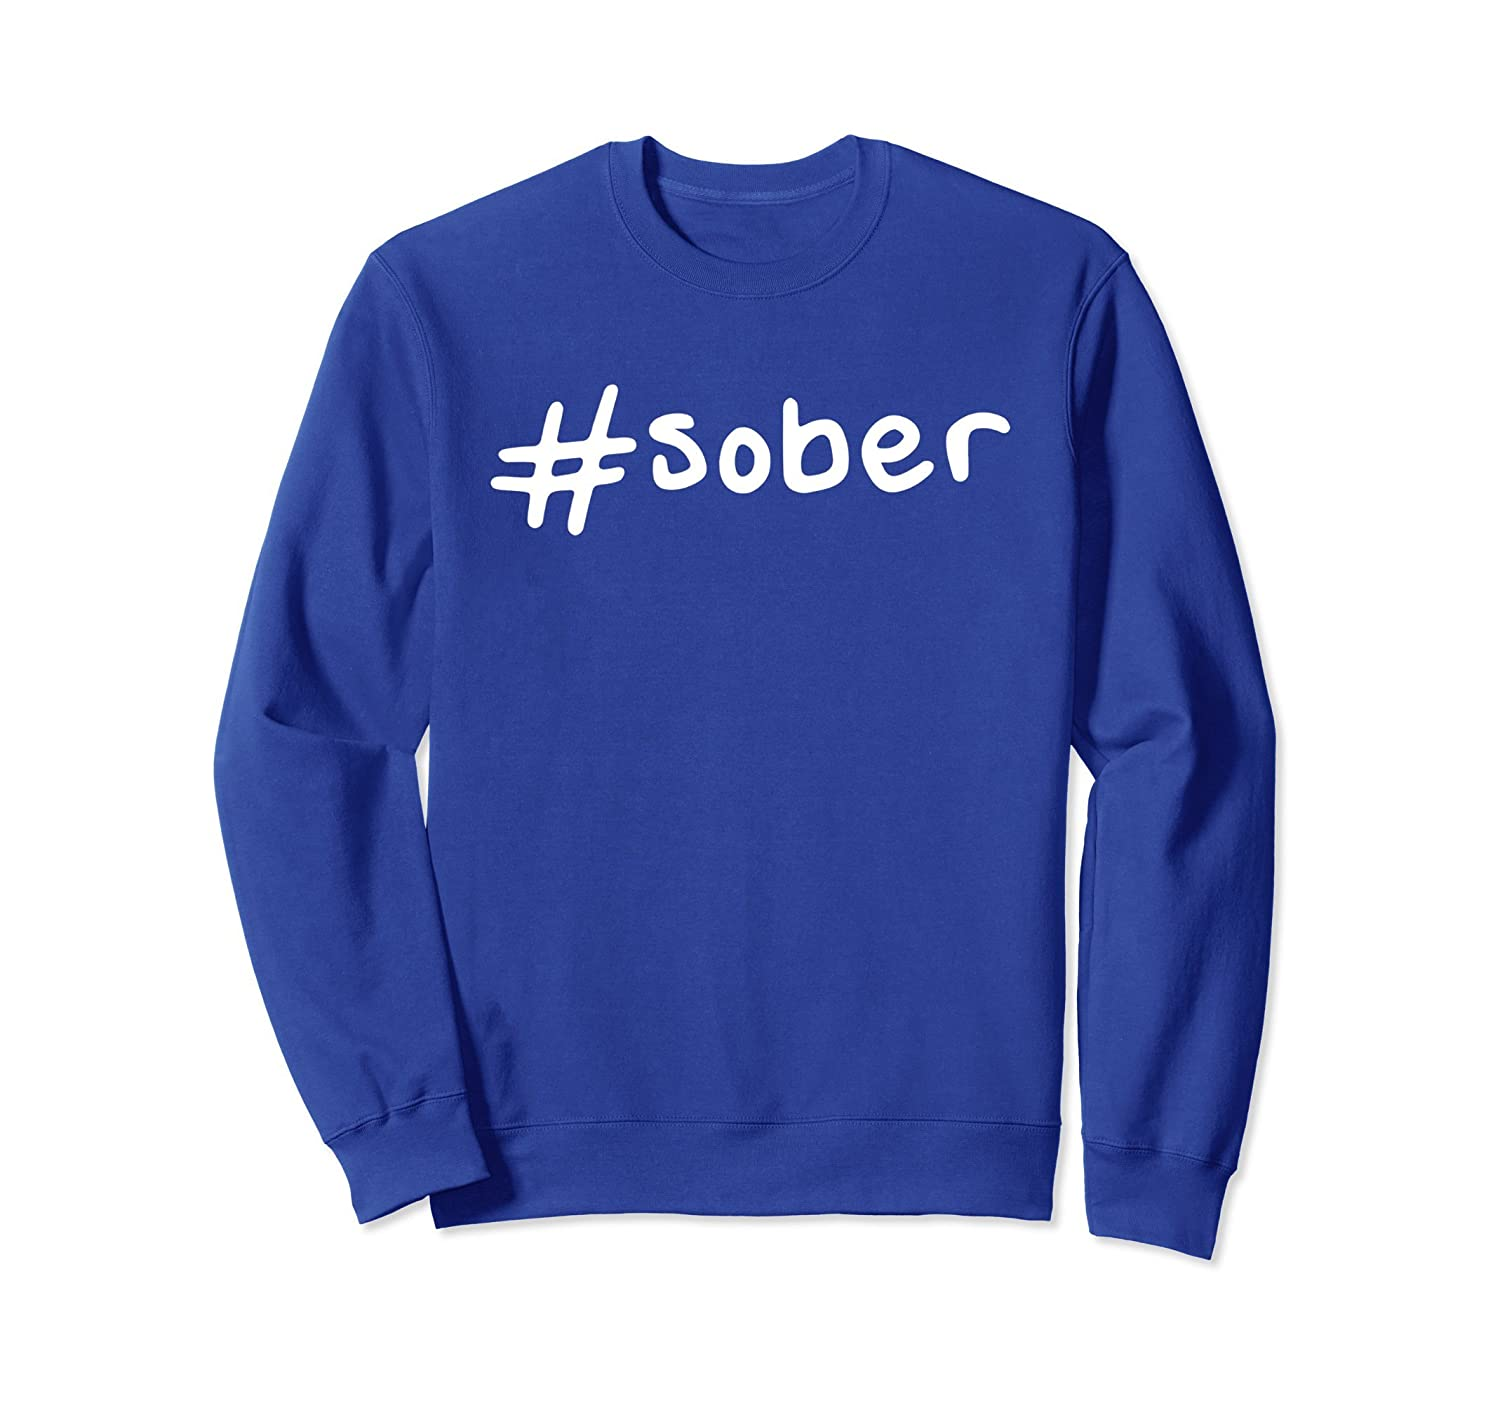 #sober Sweatshirt, Sobriety Steps Recovery Gifts-ah my shirt one gift